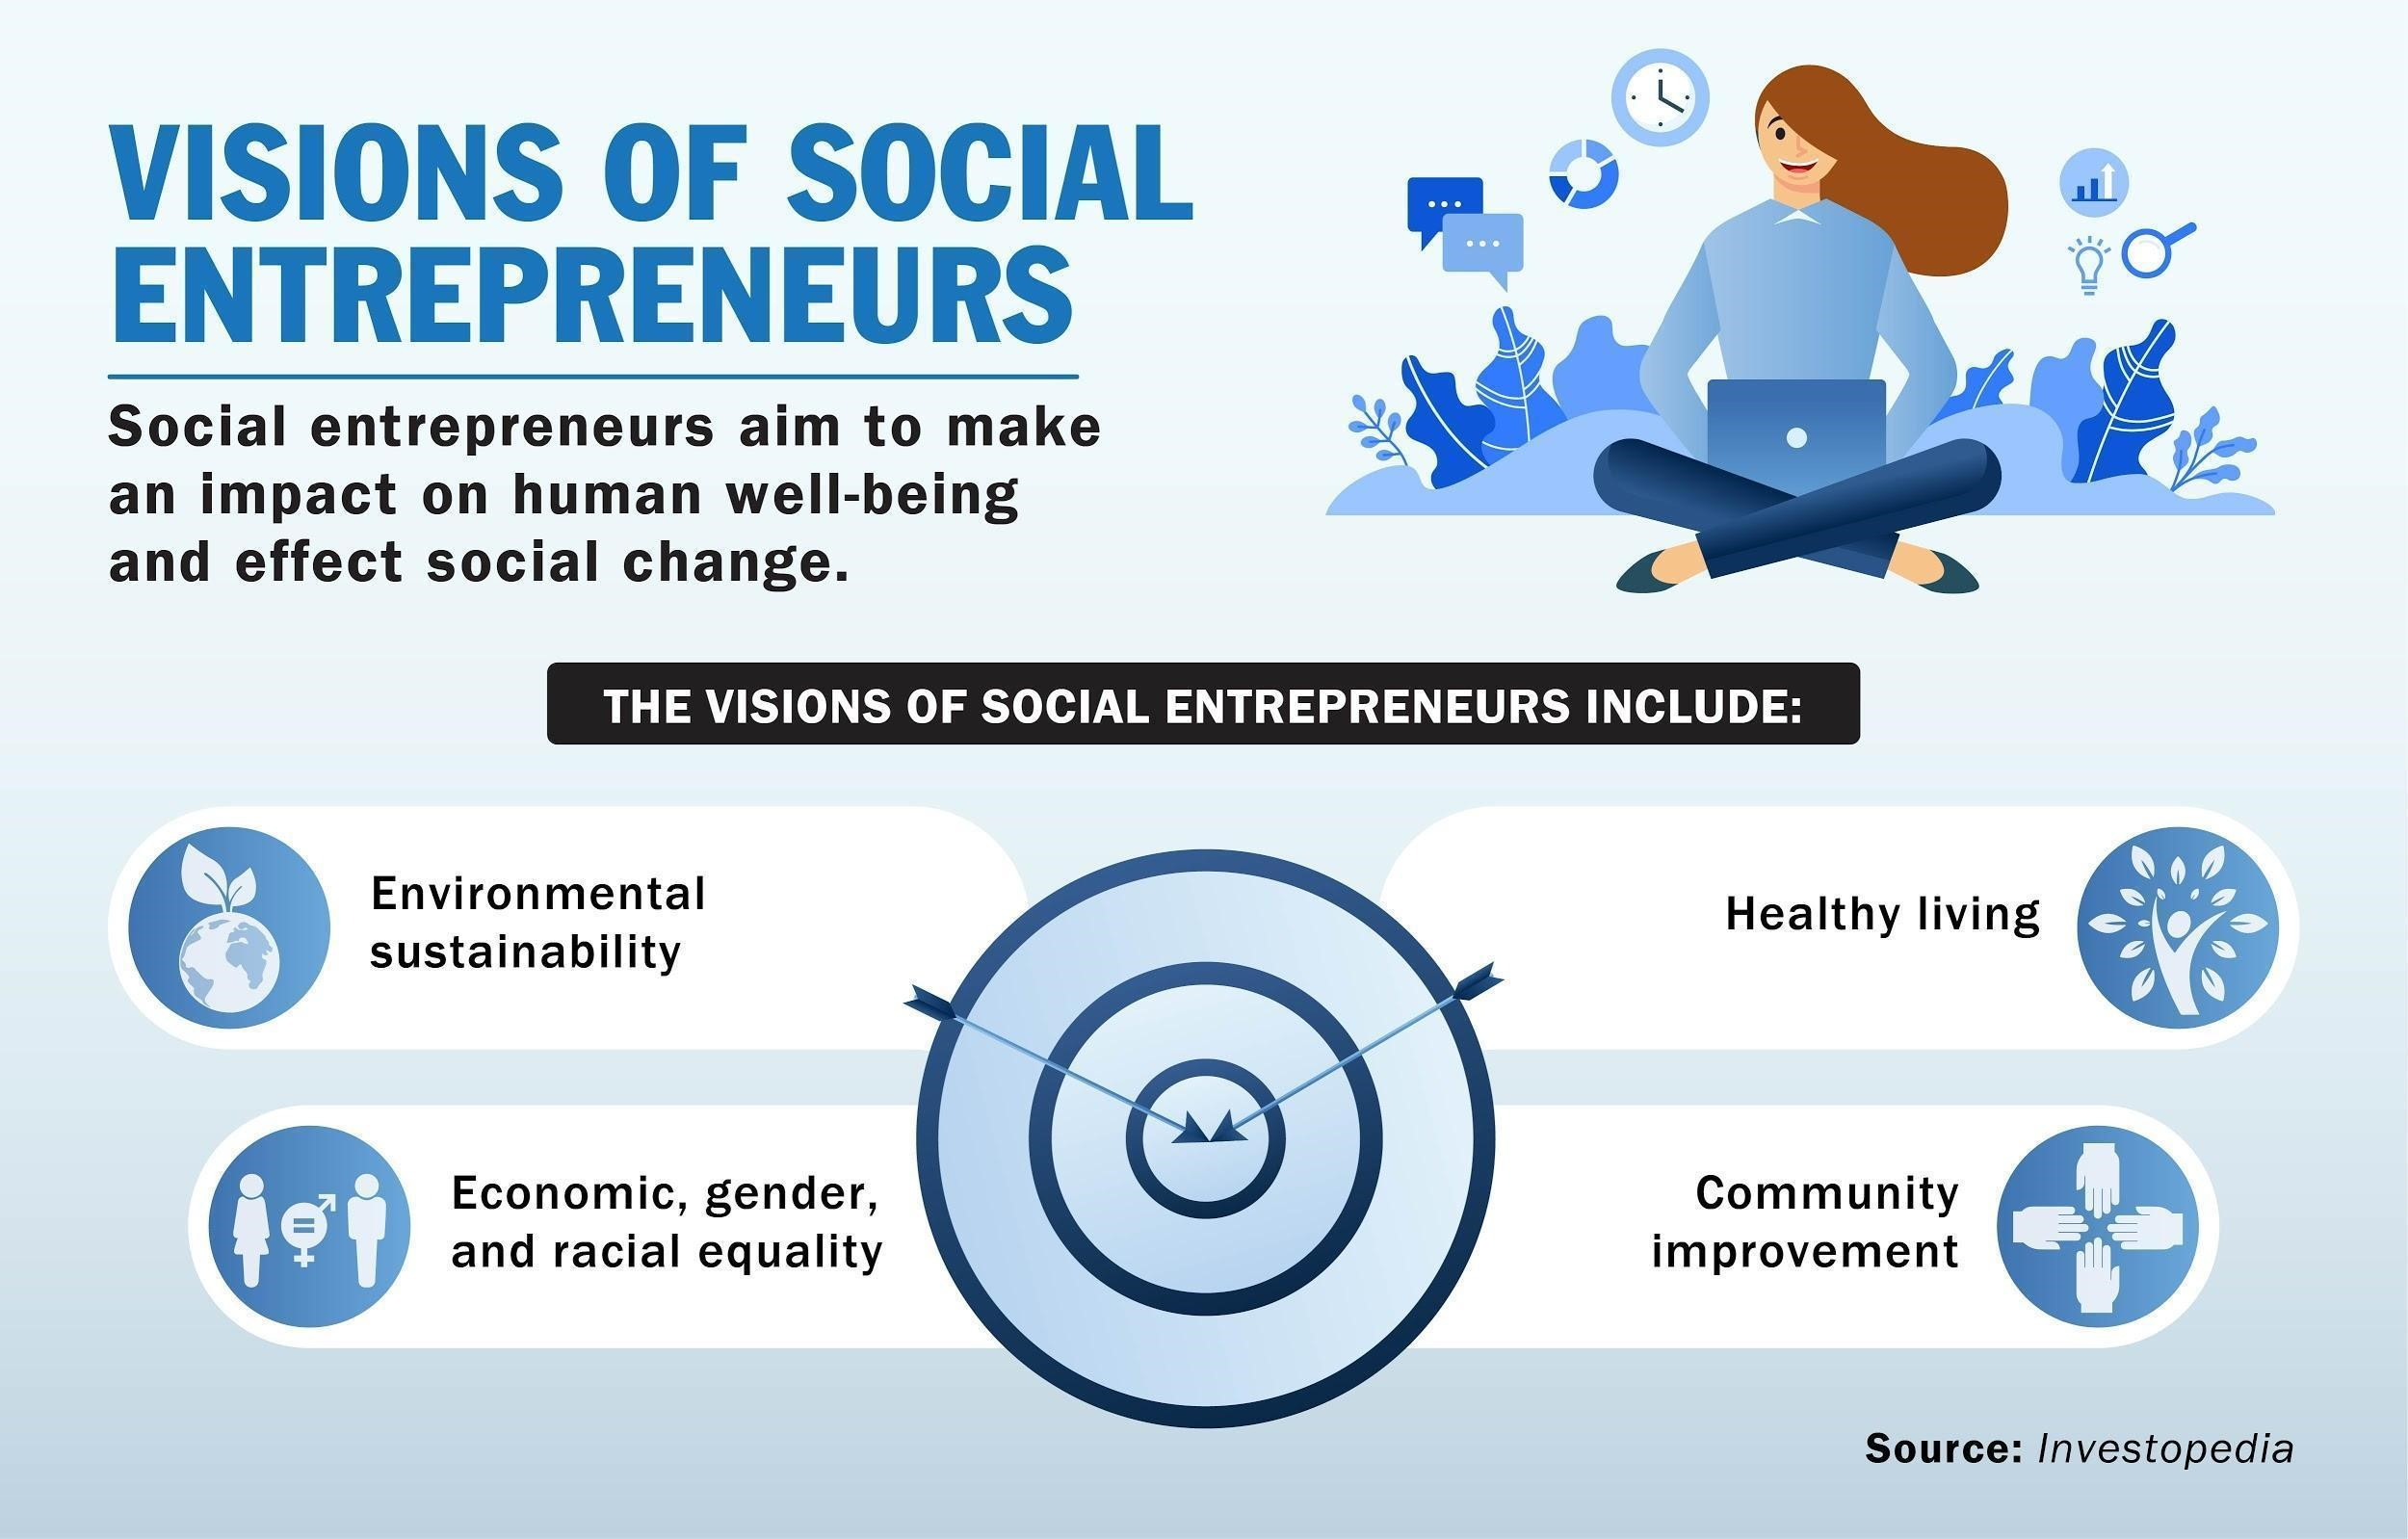 Social entrepreneurs strive to make an impact on human well-being and effect social change.